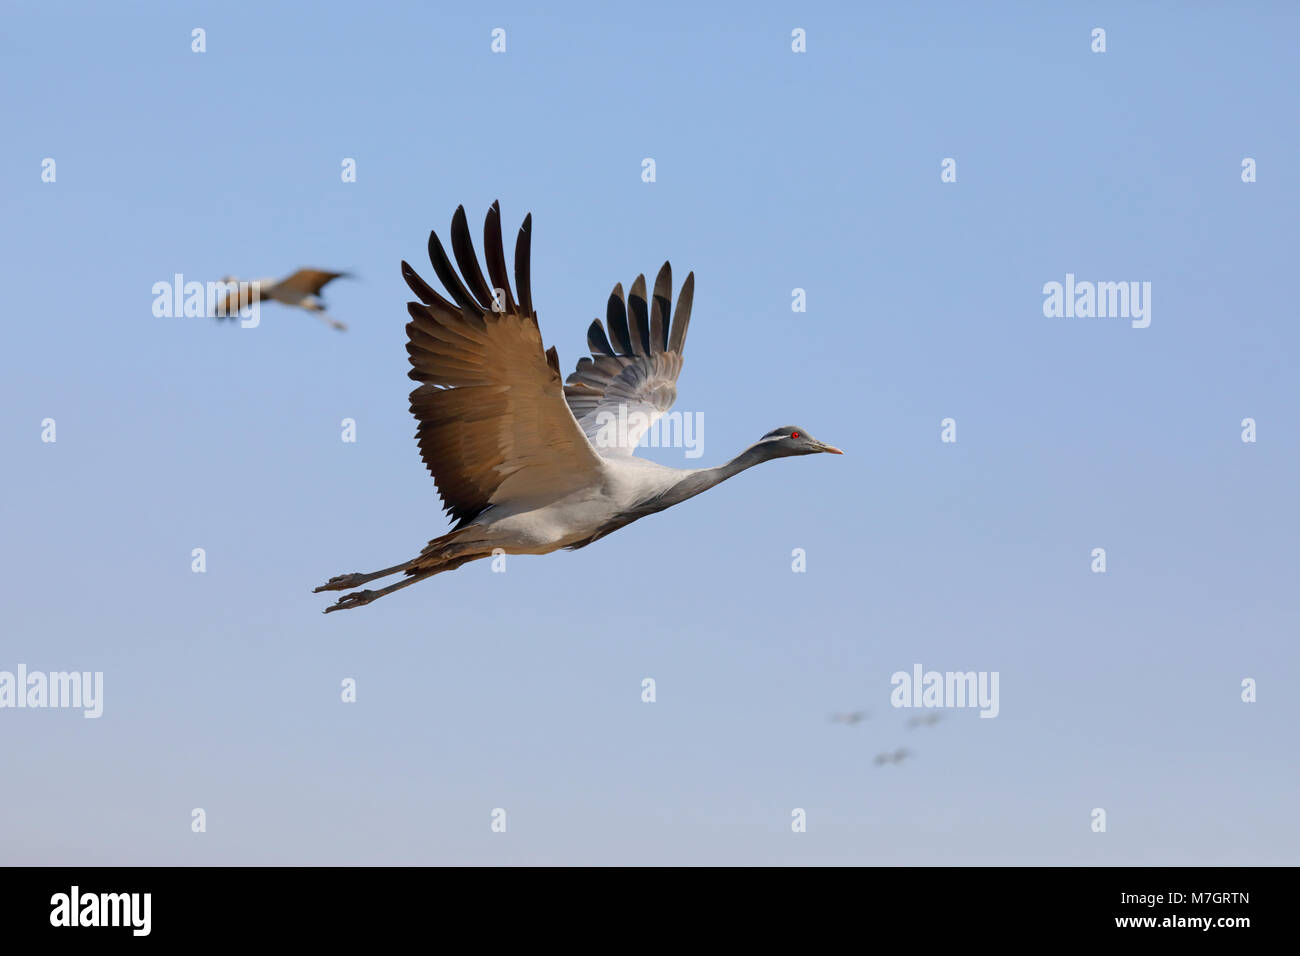 Adult Demoiselle Crane (Grus virgo) in flight at the traditional site of Khichan in Rajasthan, India Stock Photo